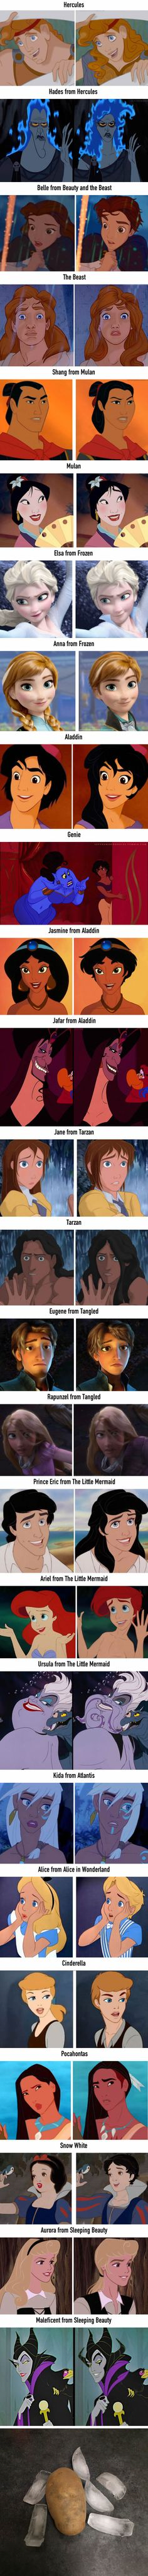 26 gender-bending Disney characters^ theses are brilliantly done, all of these all exactly how I believe these charac would look like if they were the opposite gender